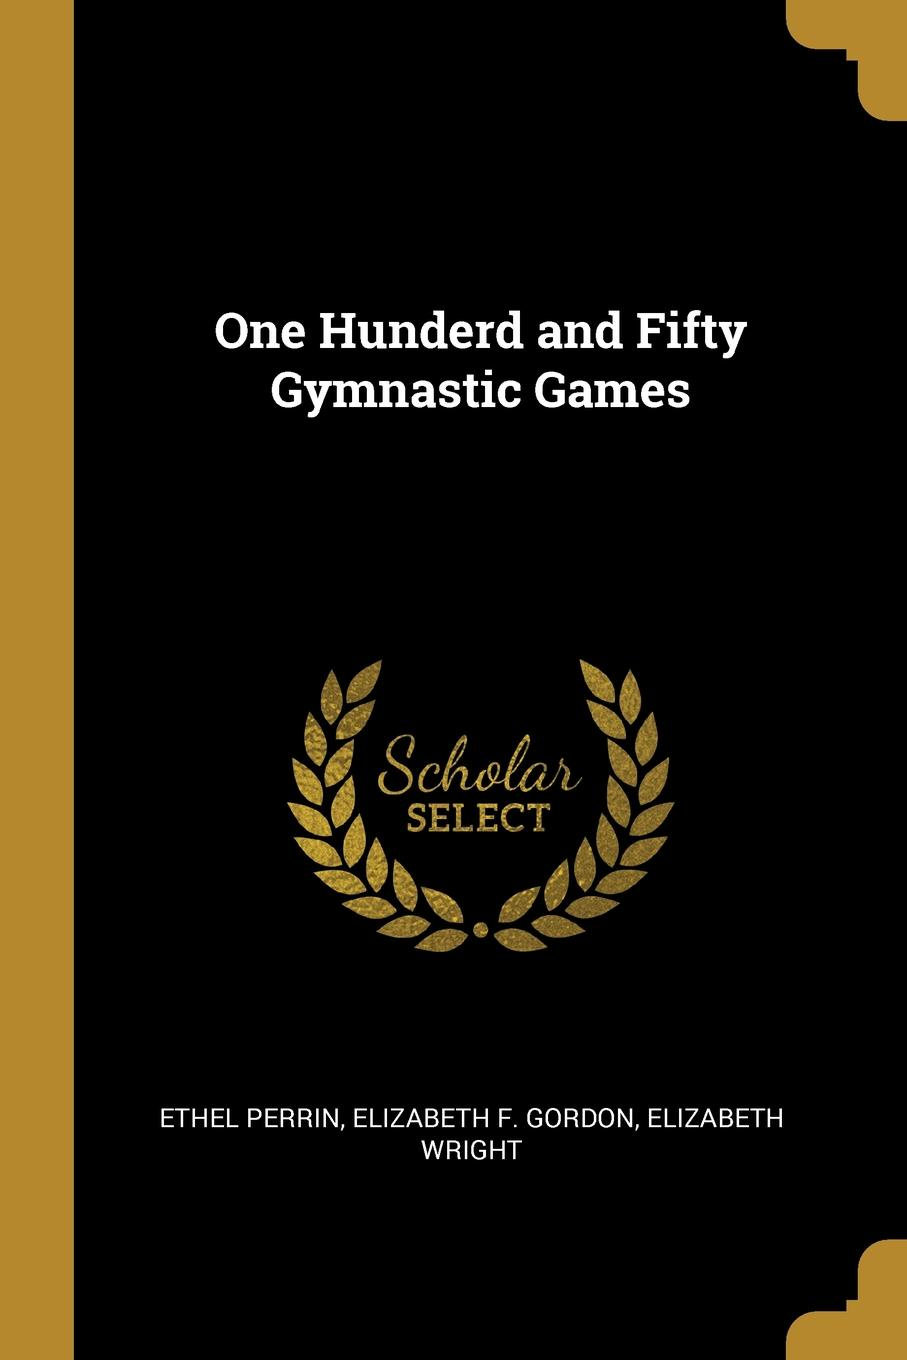 Elizabeth F. Gordon Elizabeth W Perrin. One Hunderd and Fifty Gymnastic Games